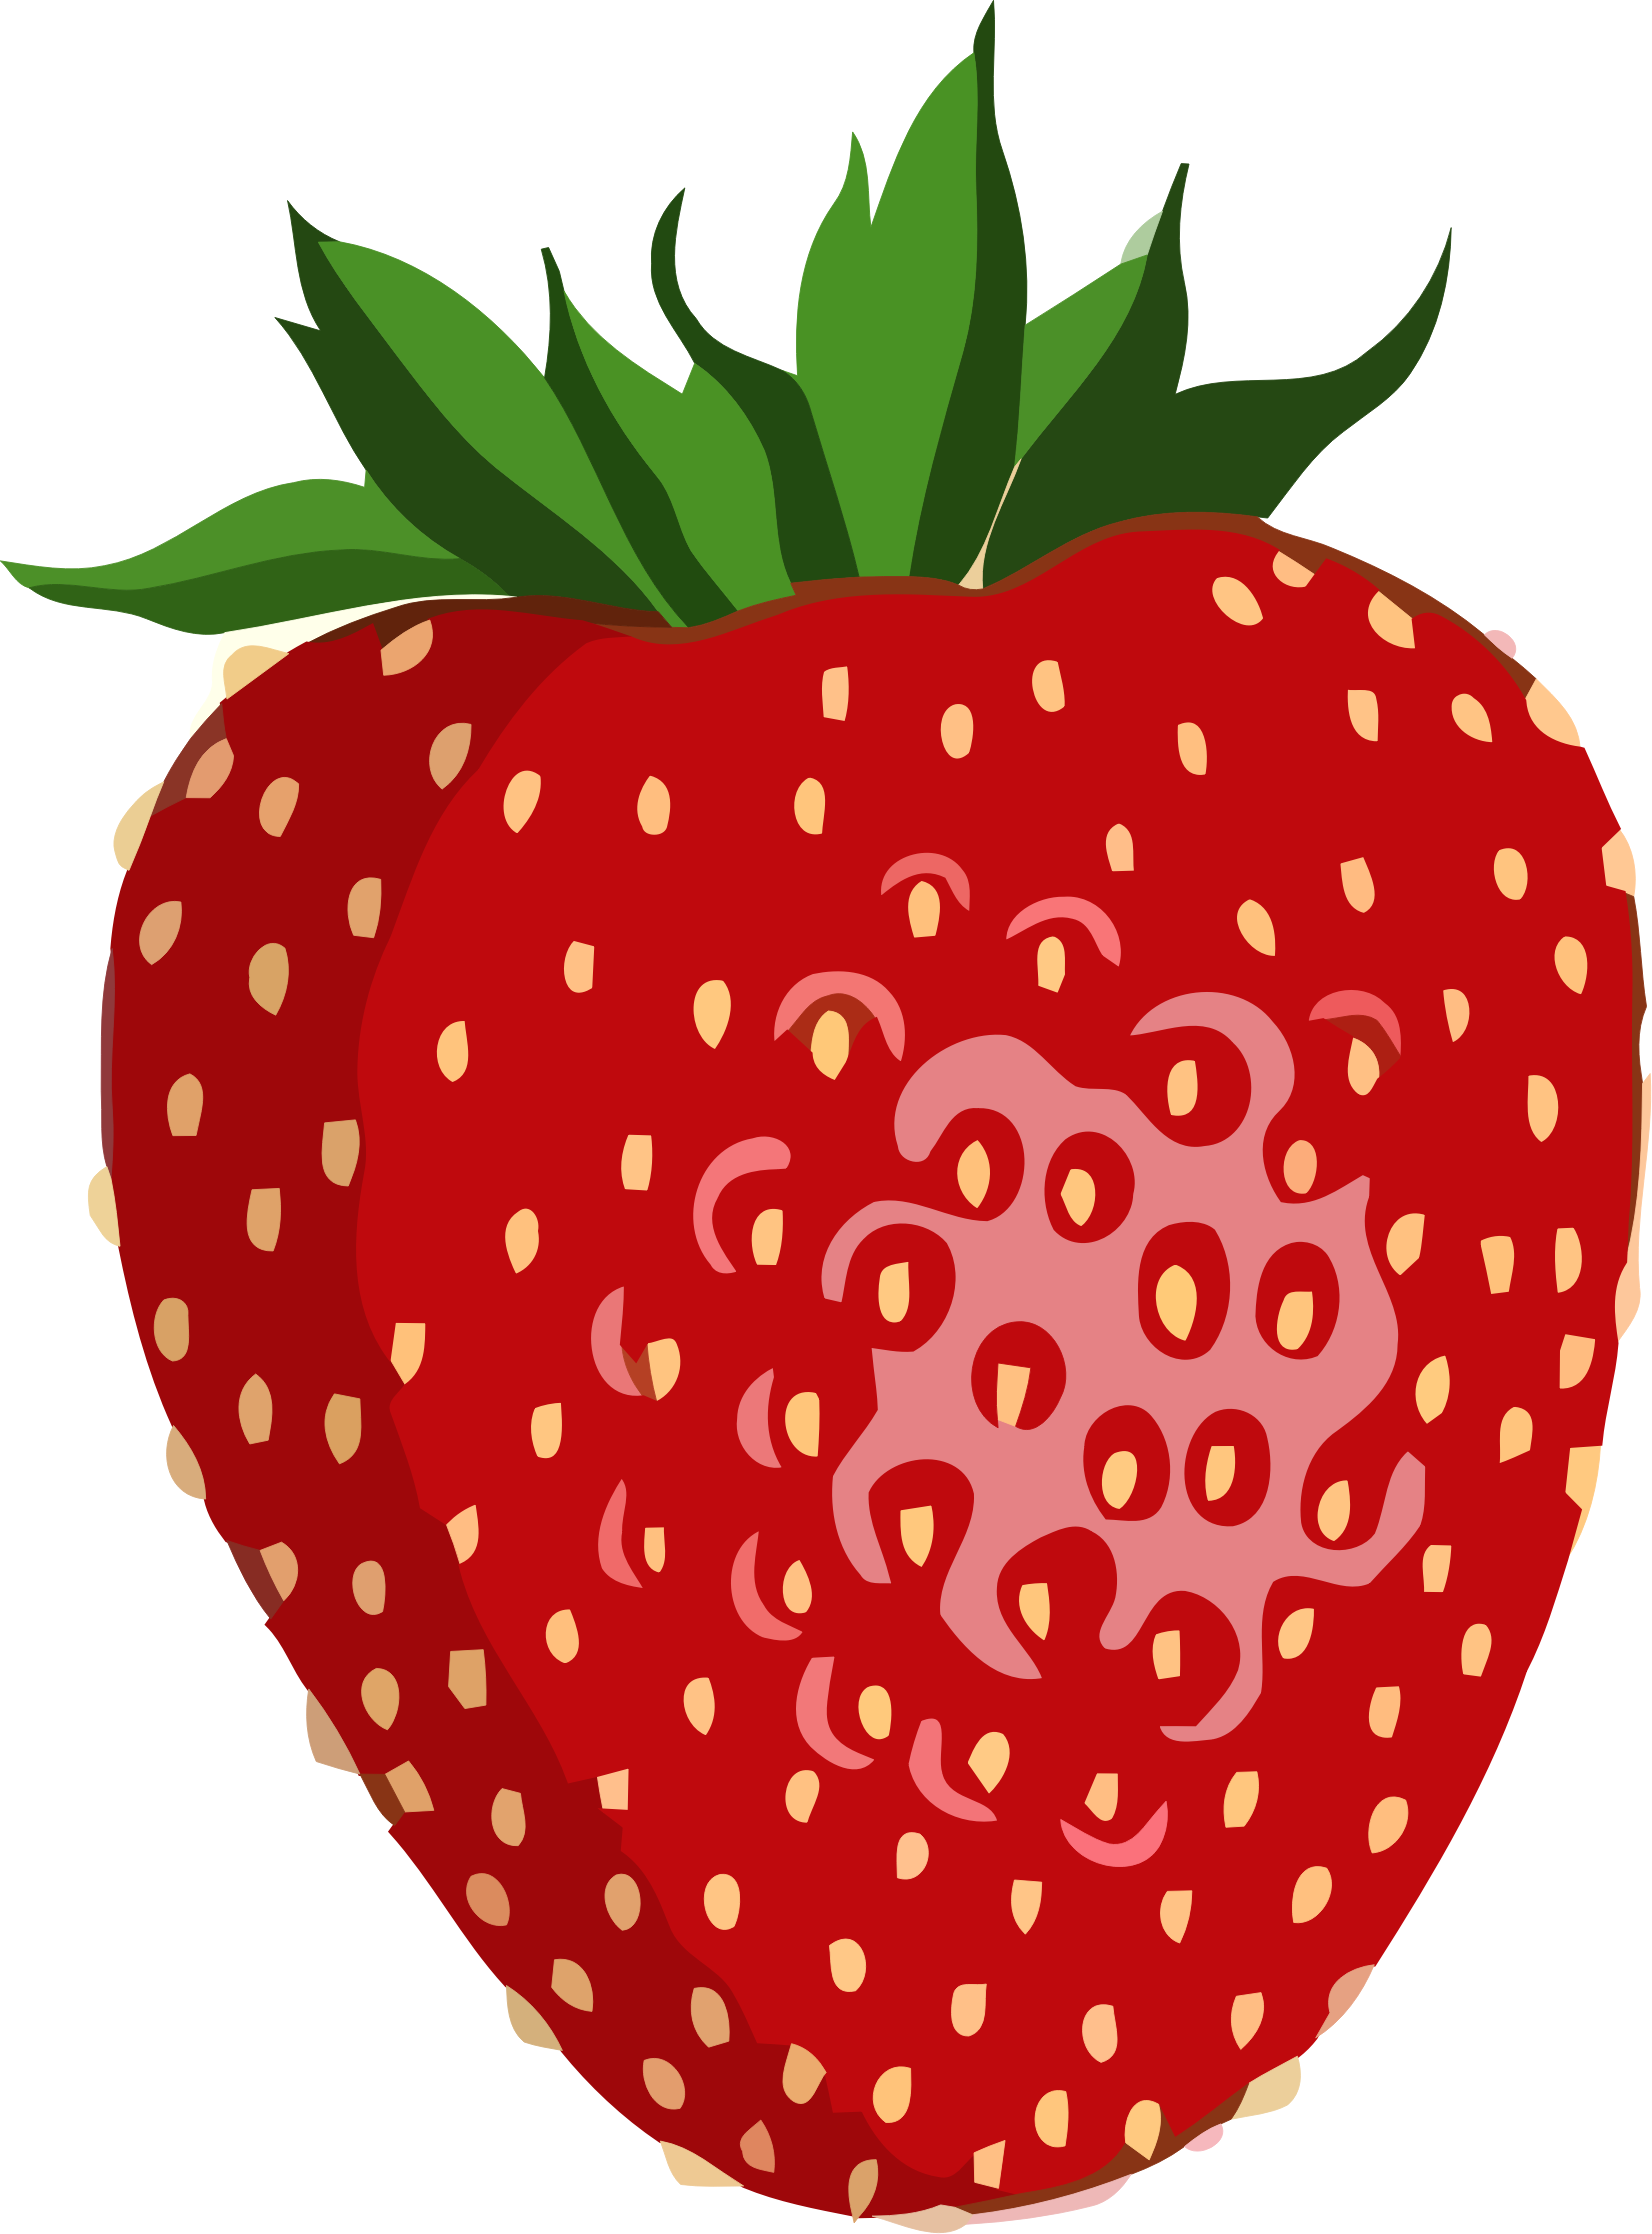 shiny-strawberry-vector-graphic